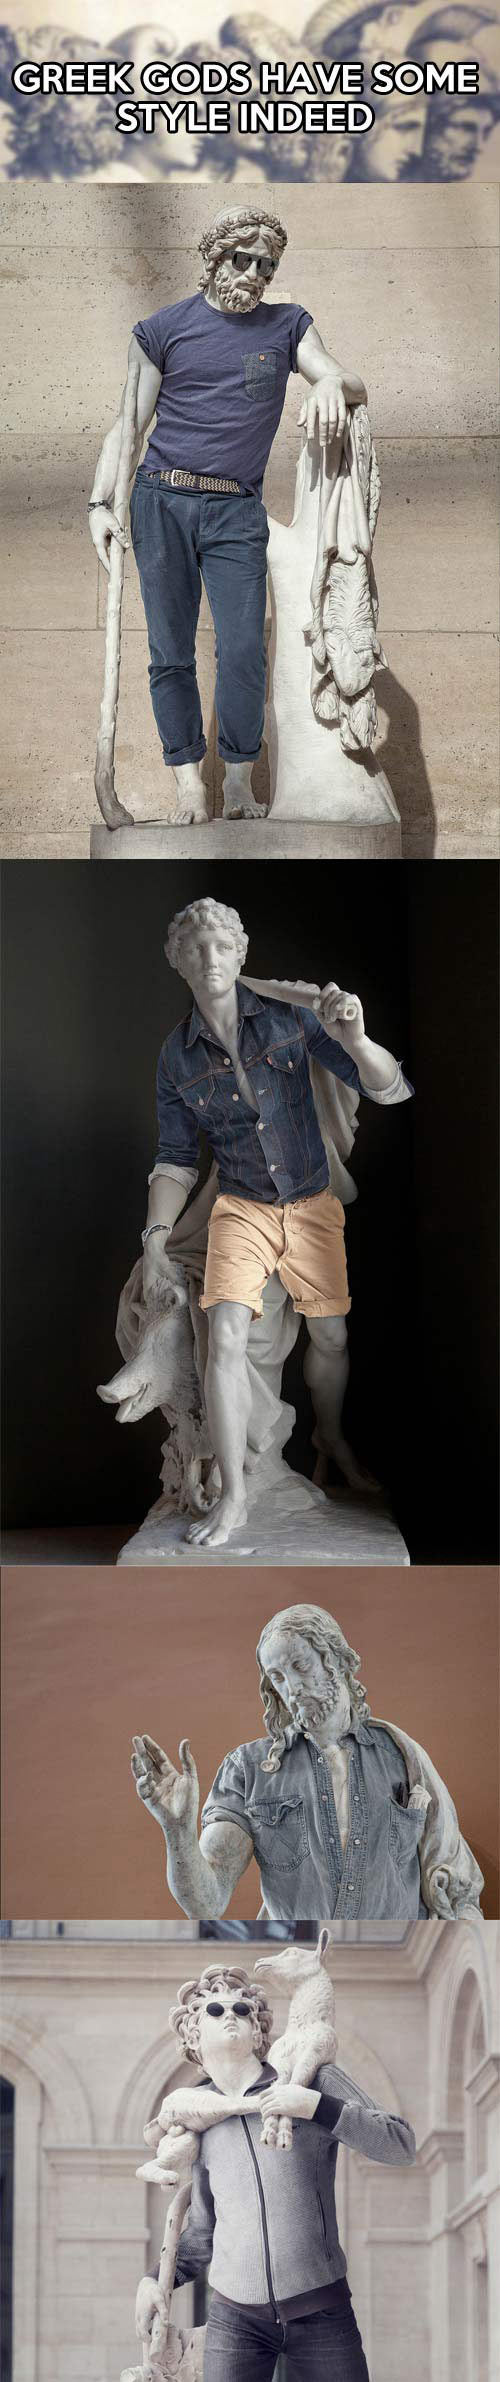 funny-Greek-gods-hipster-clothes